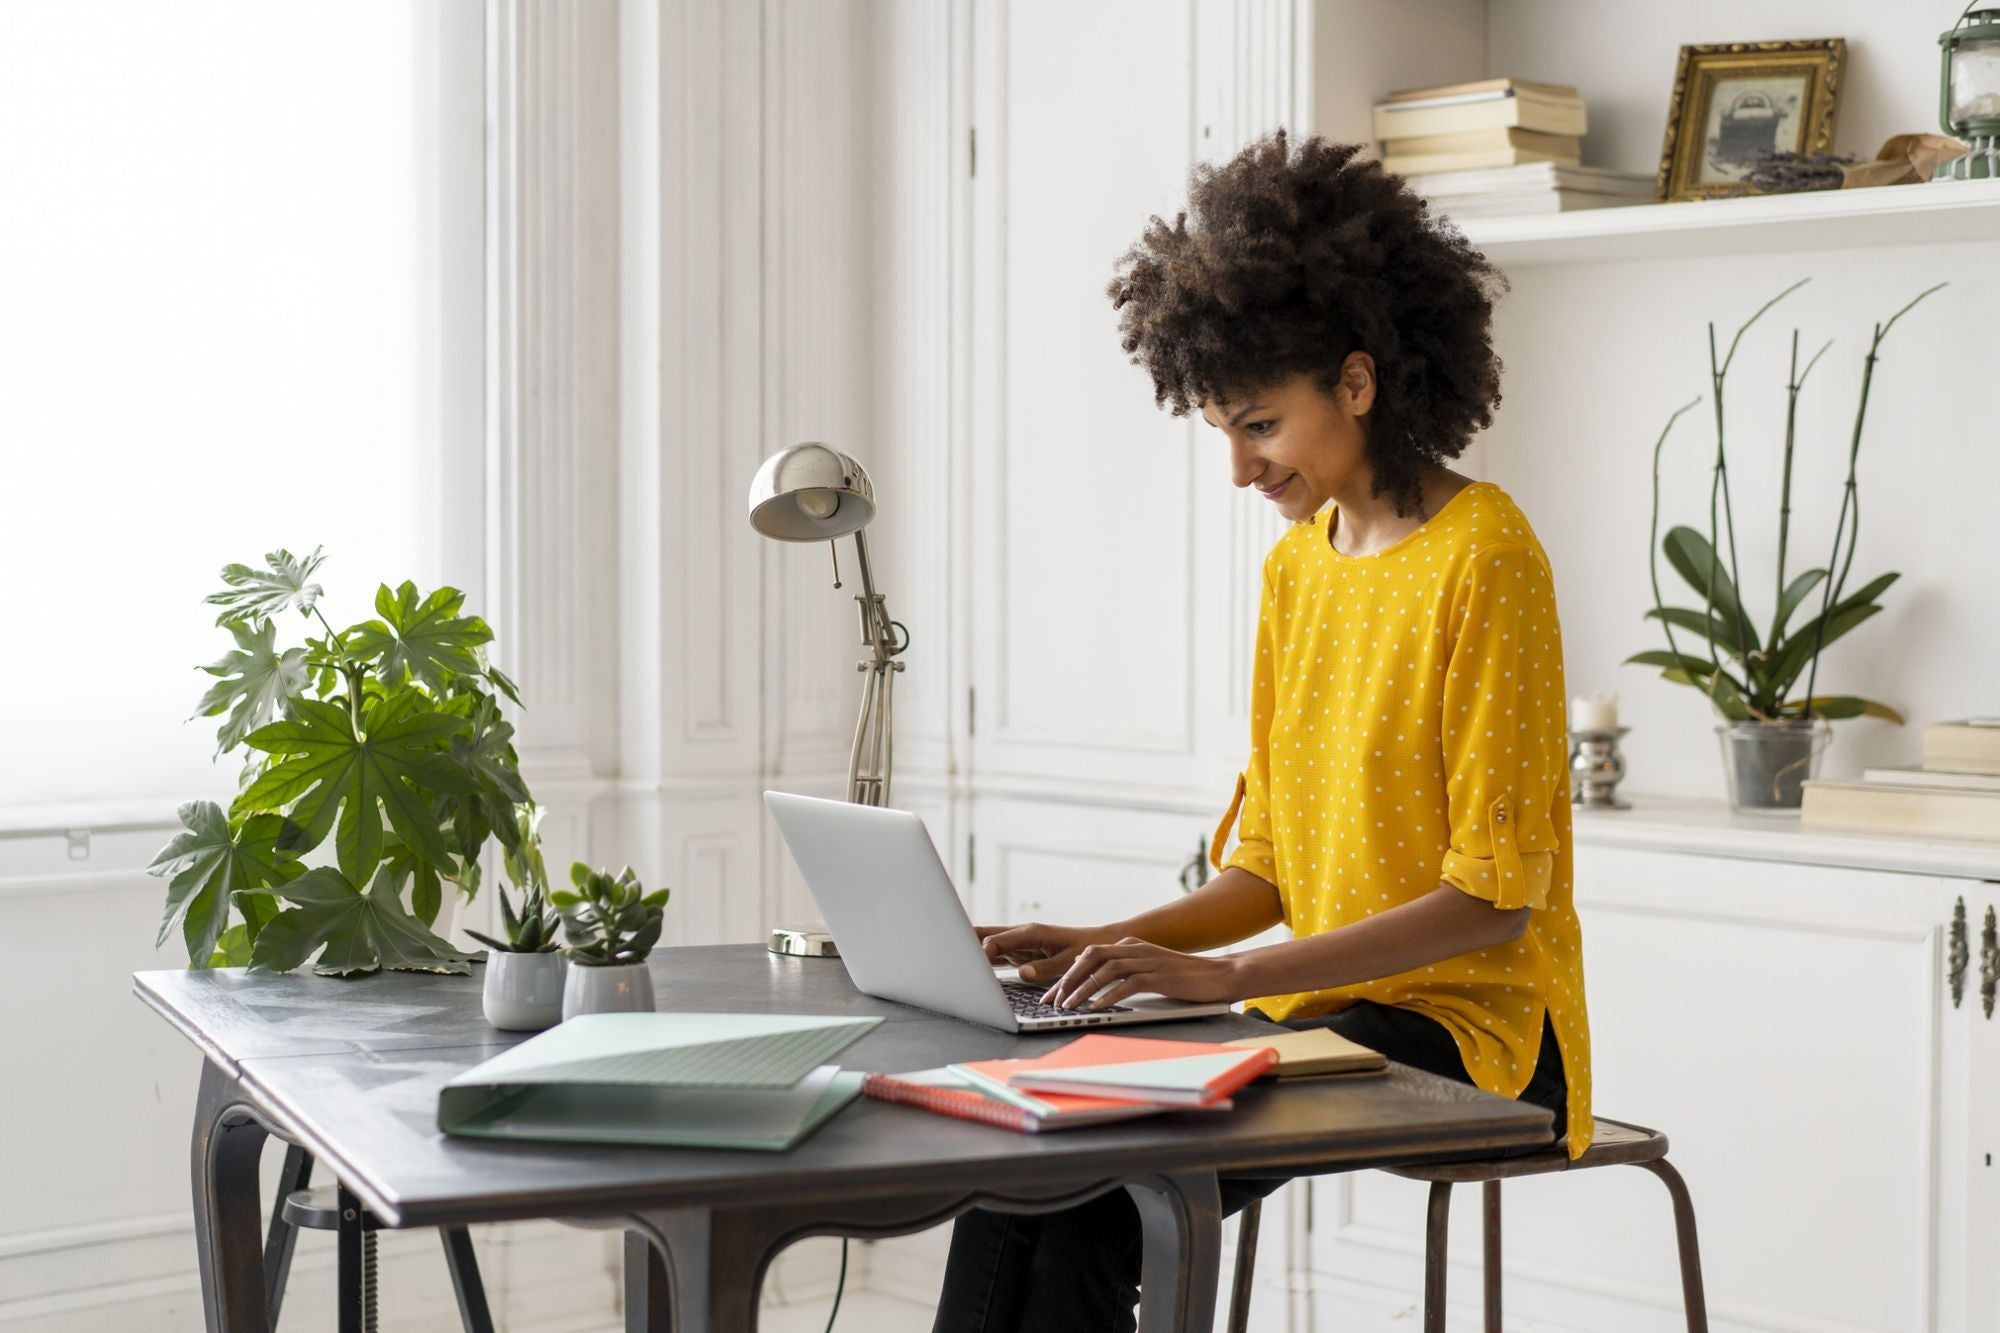 10 Tips From Ceos On Working From Home Effectively And Happily Work From Home Tips Home Part Time Jobs